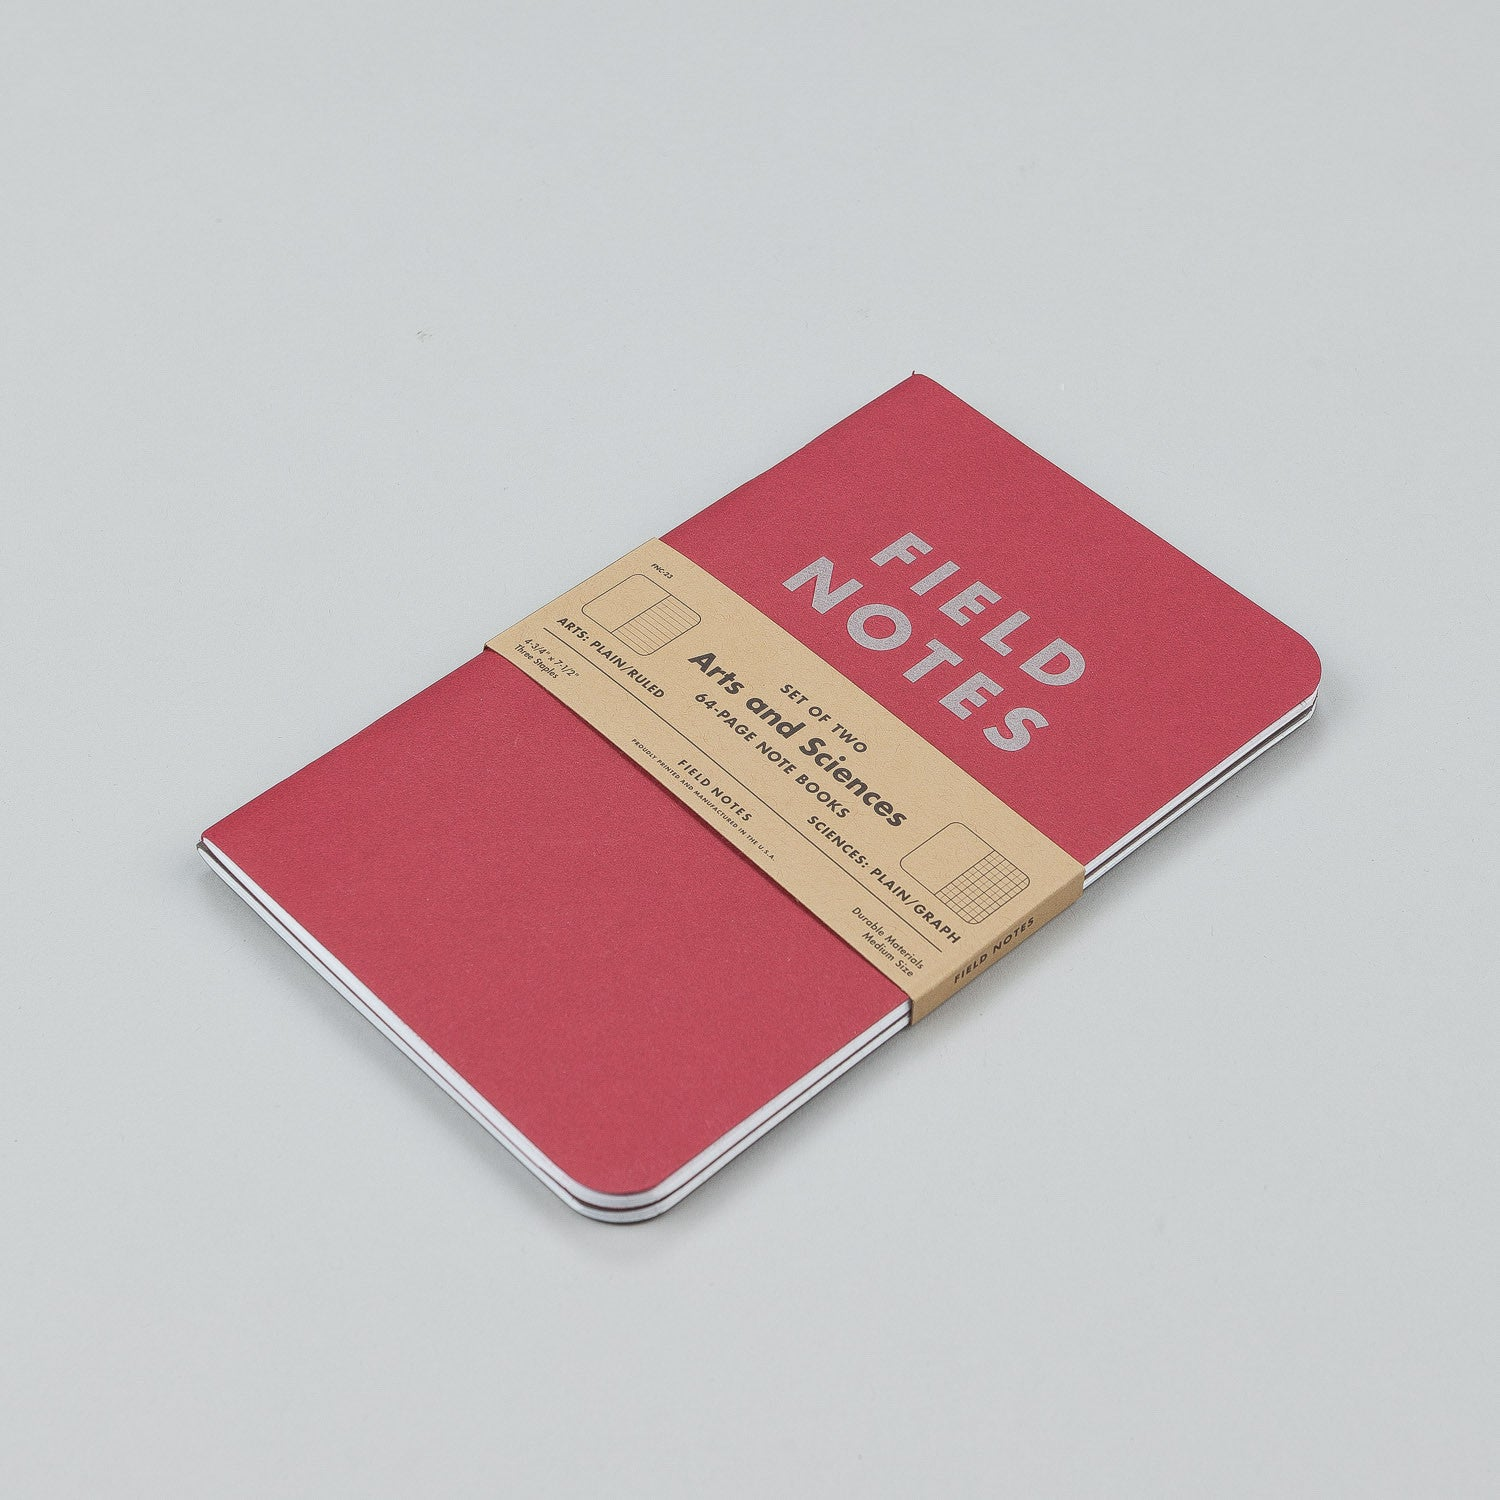 Field Notes Limited Edition Arts and Sciences Notebooks